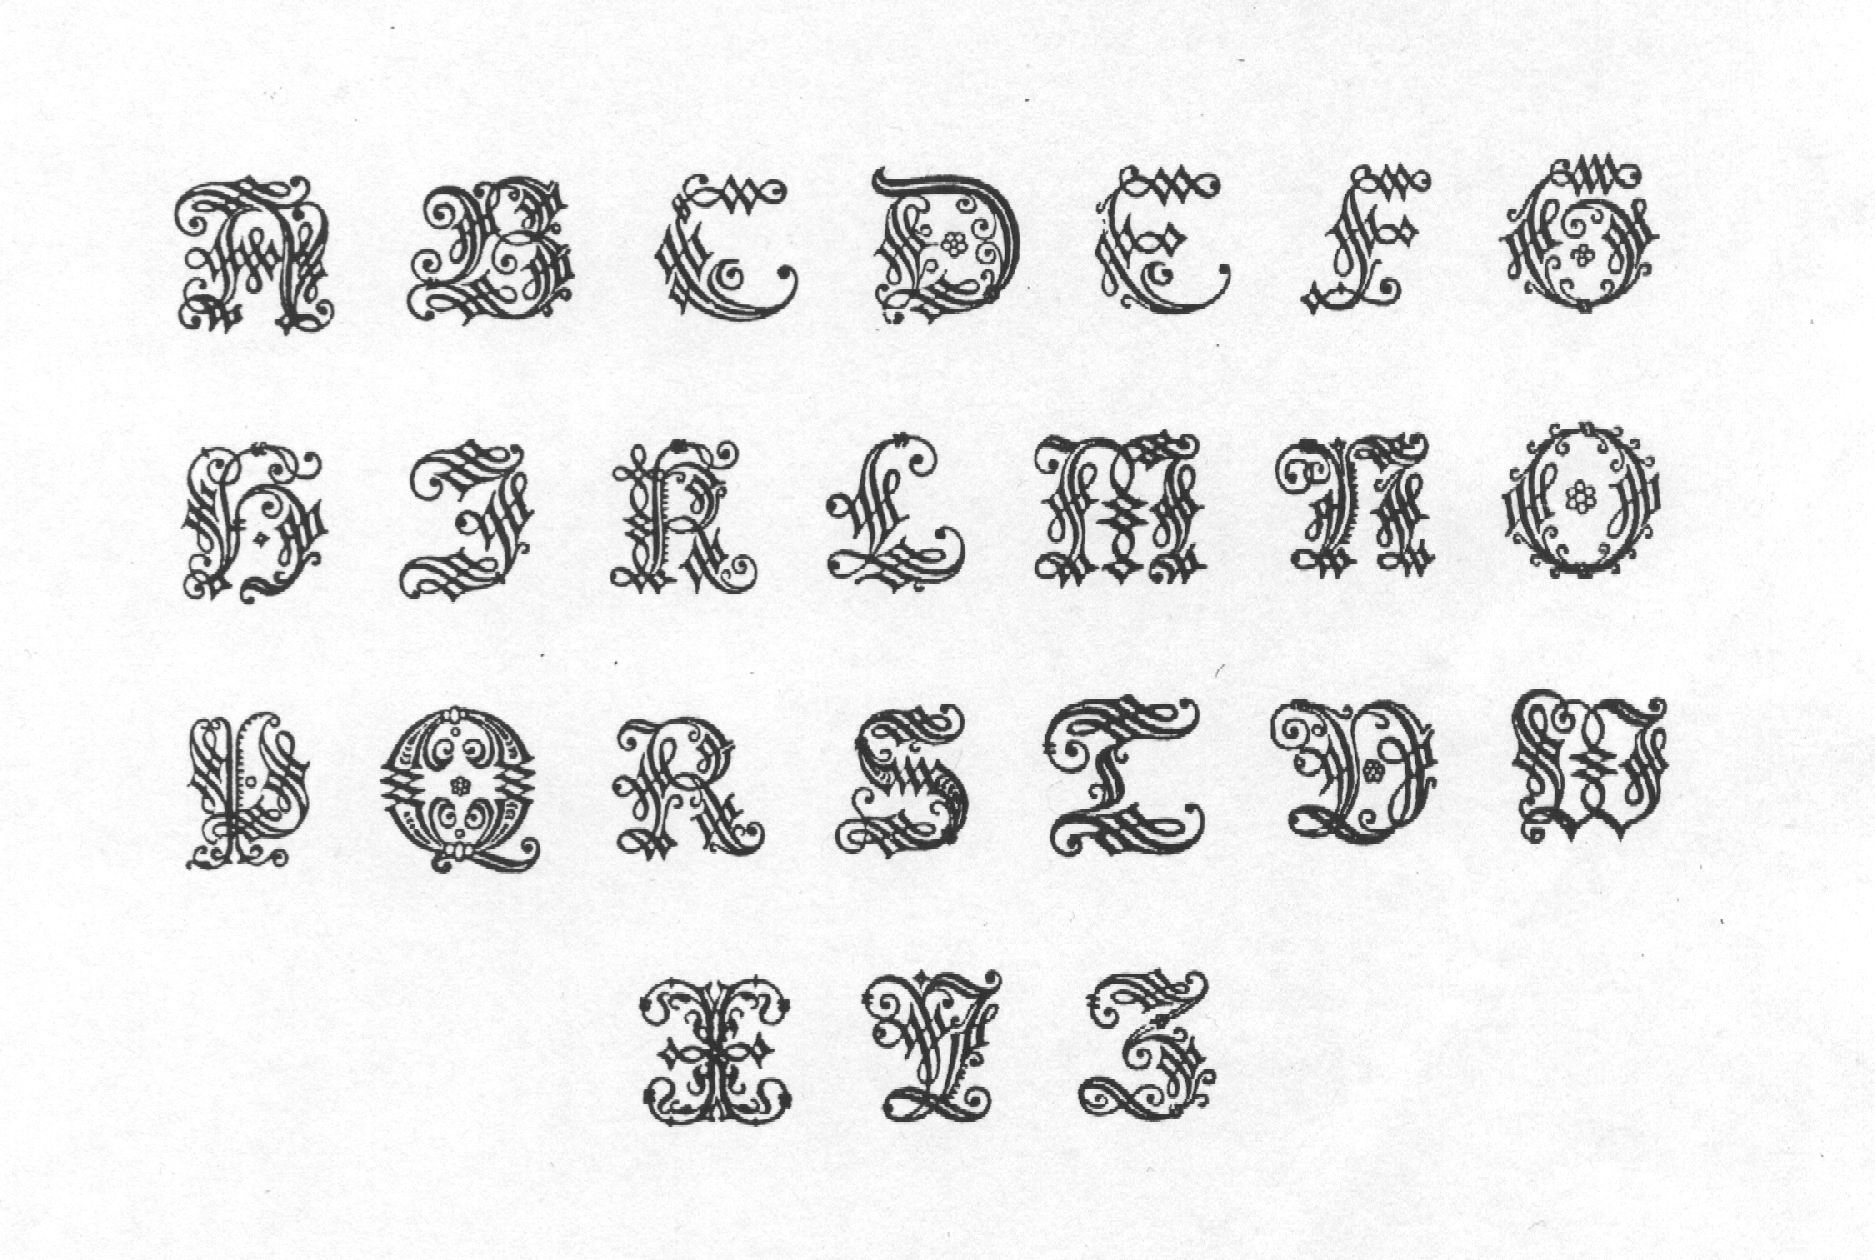 Free Printable Coloring Pages For Kids Fruits Pliers Nails Vase Bottles Ball Banana likewise 63894888435840072 moreover Disegno Da Colorare 01a Alfabeto B I11255 likewise Ornament further 01. on medieval letter e